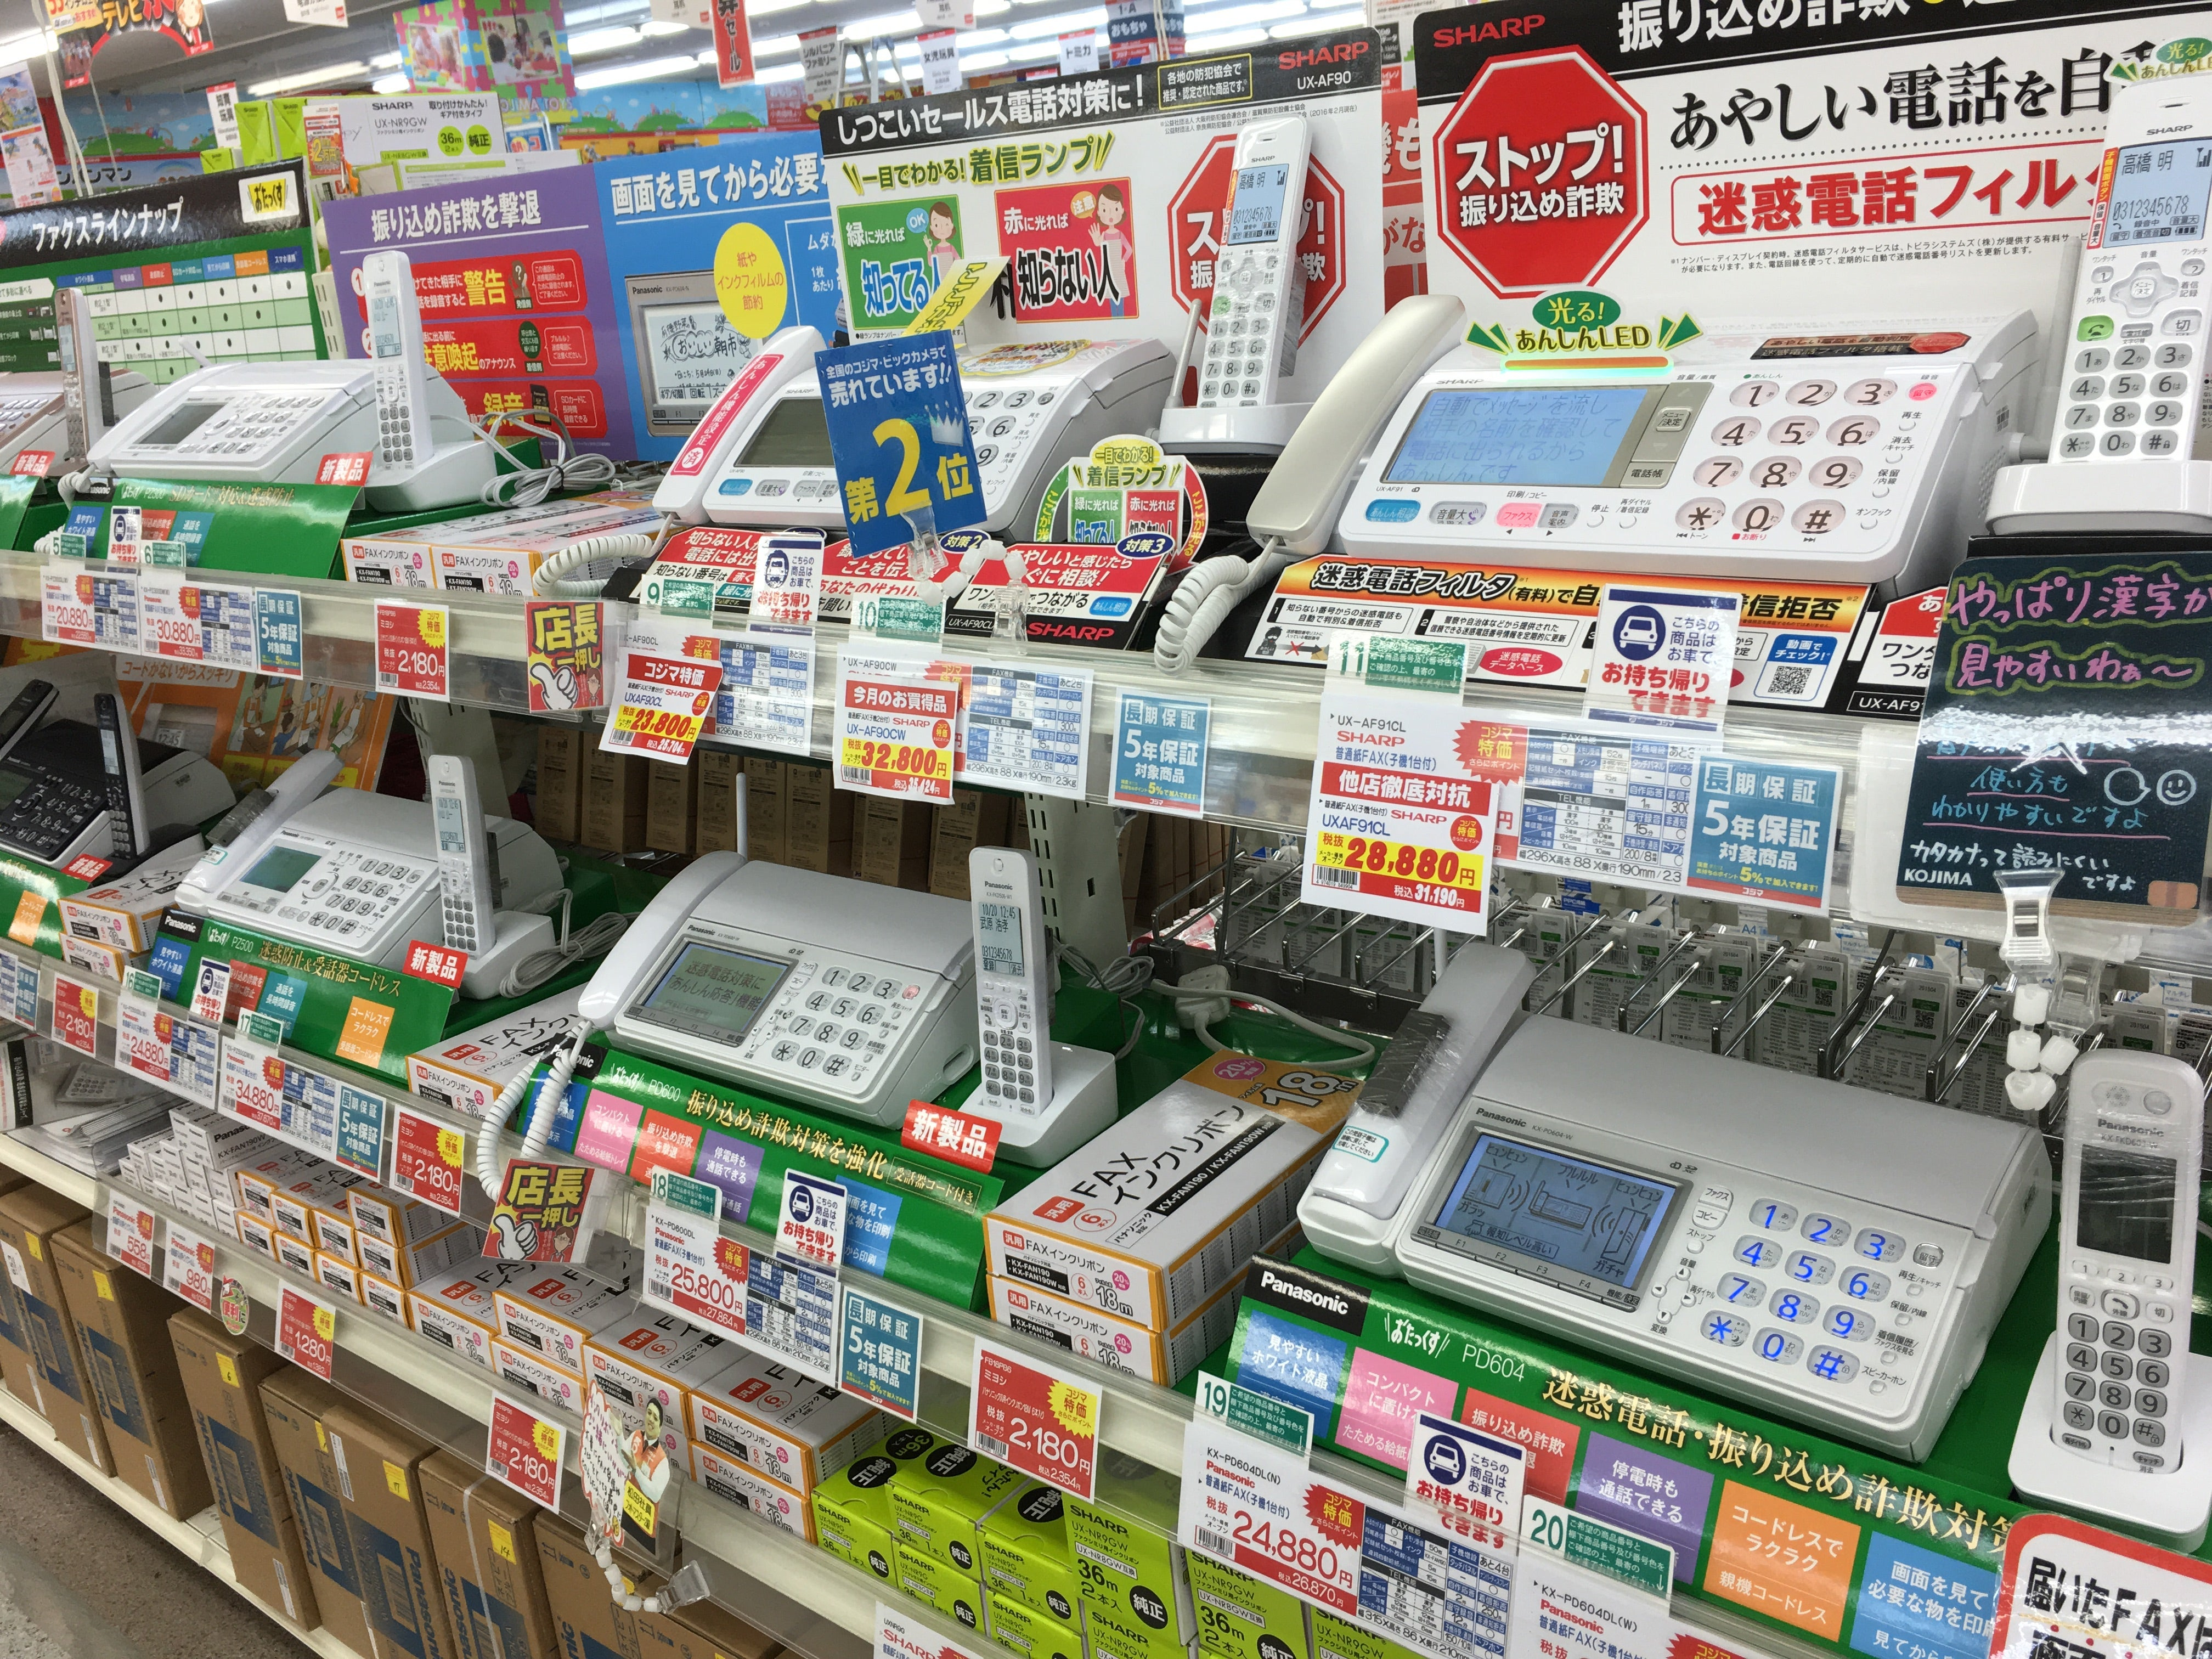 It's 2016 And I'm Buying A New Japanese Fax Machine